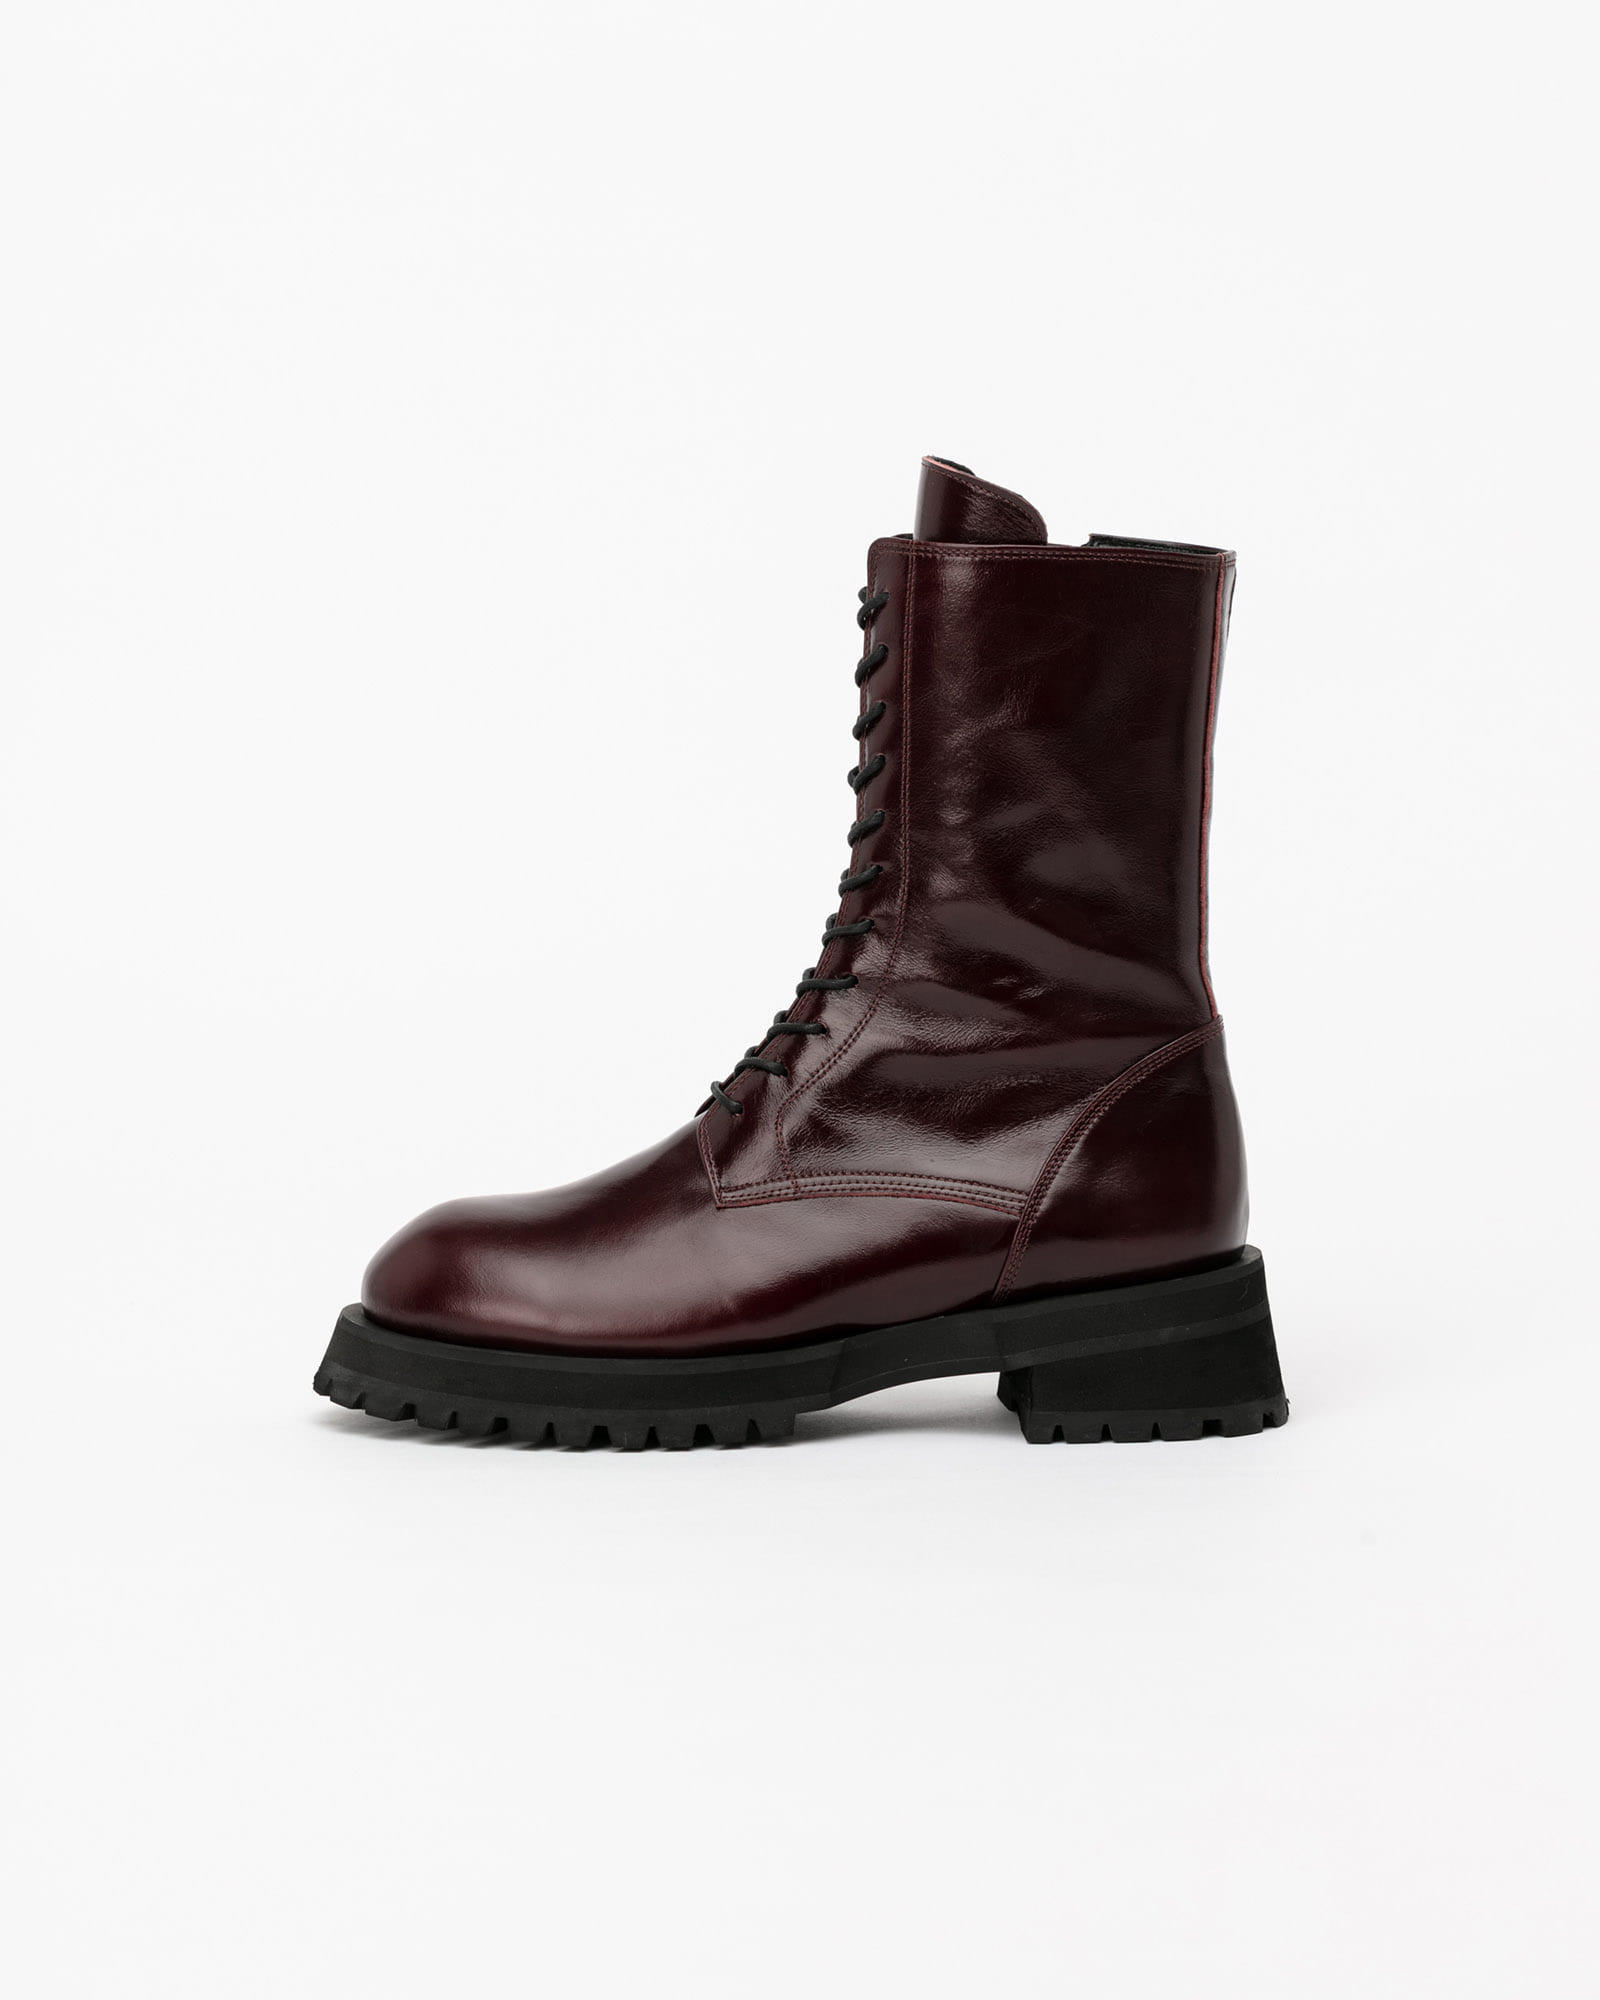 Apost Lace-up Combat Boots in Textured Wine